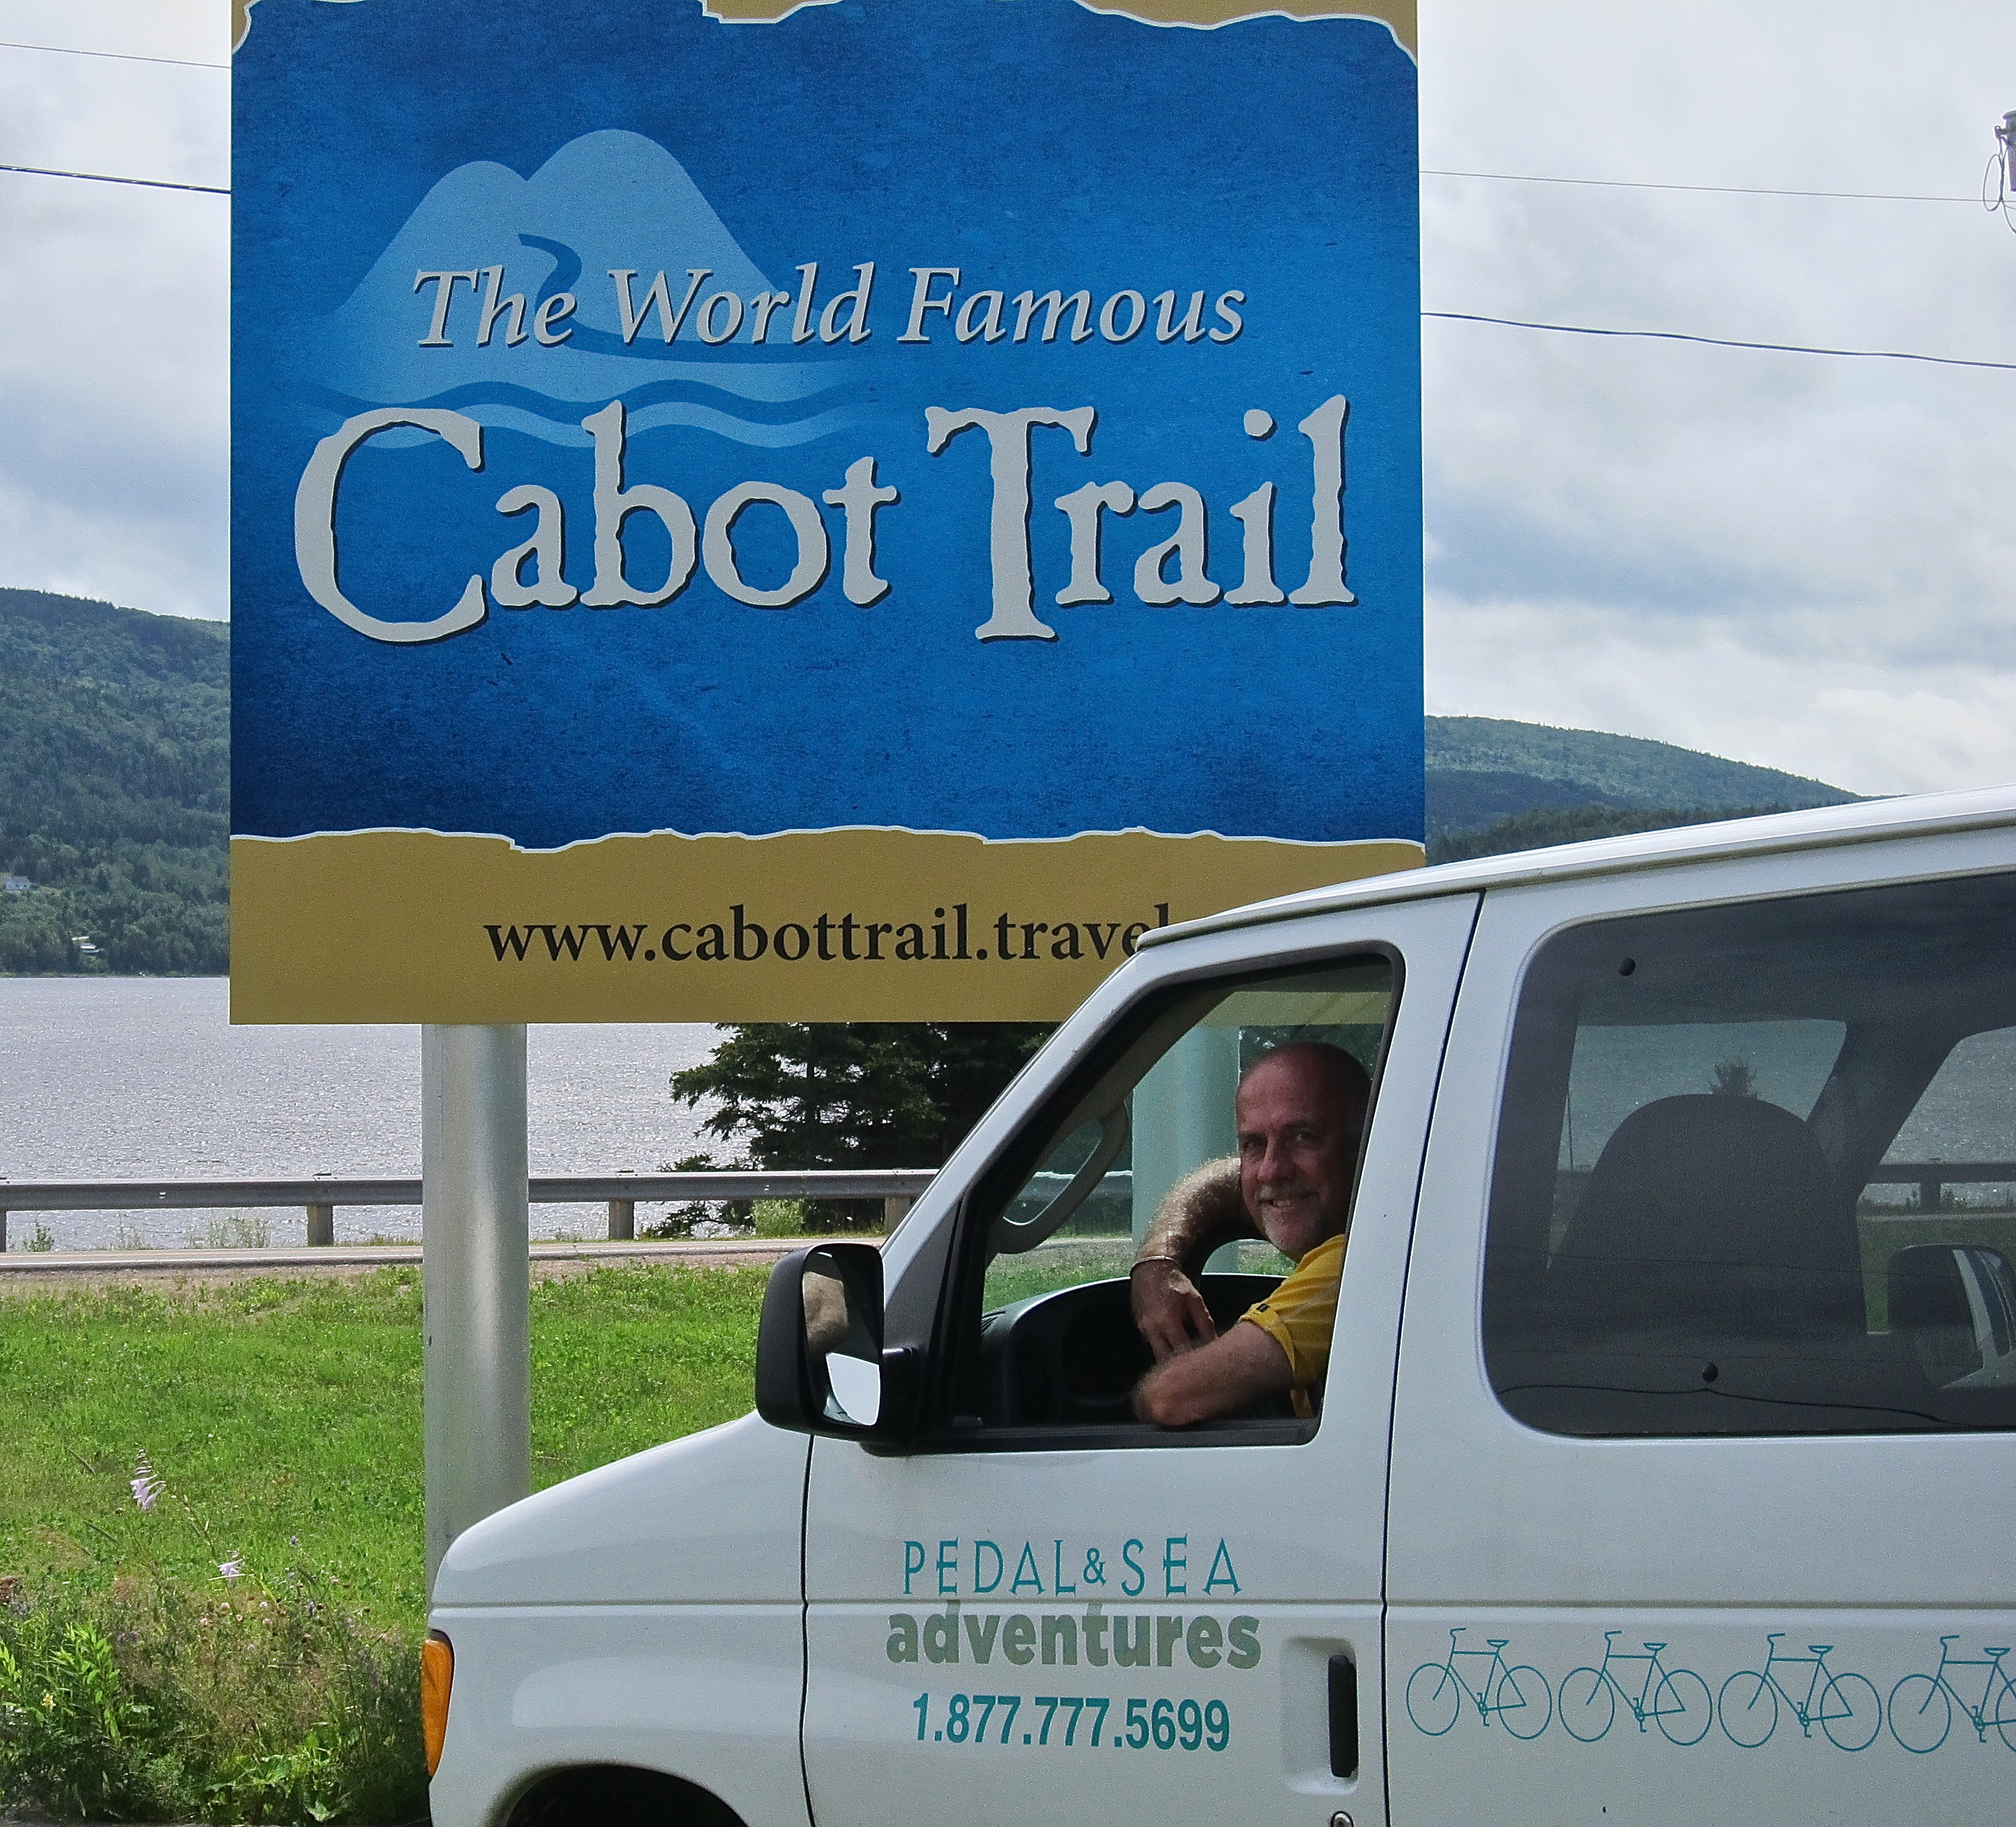 cabot trail nova scotia bike tour van